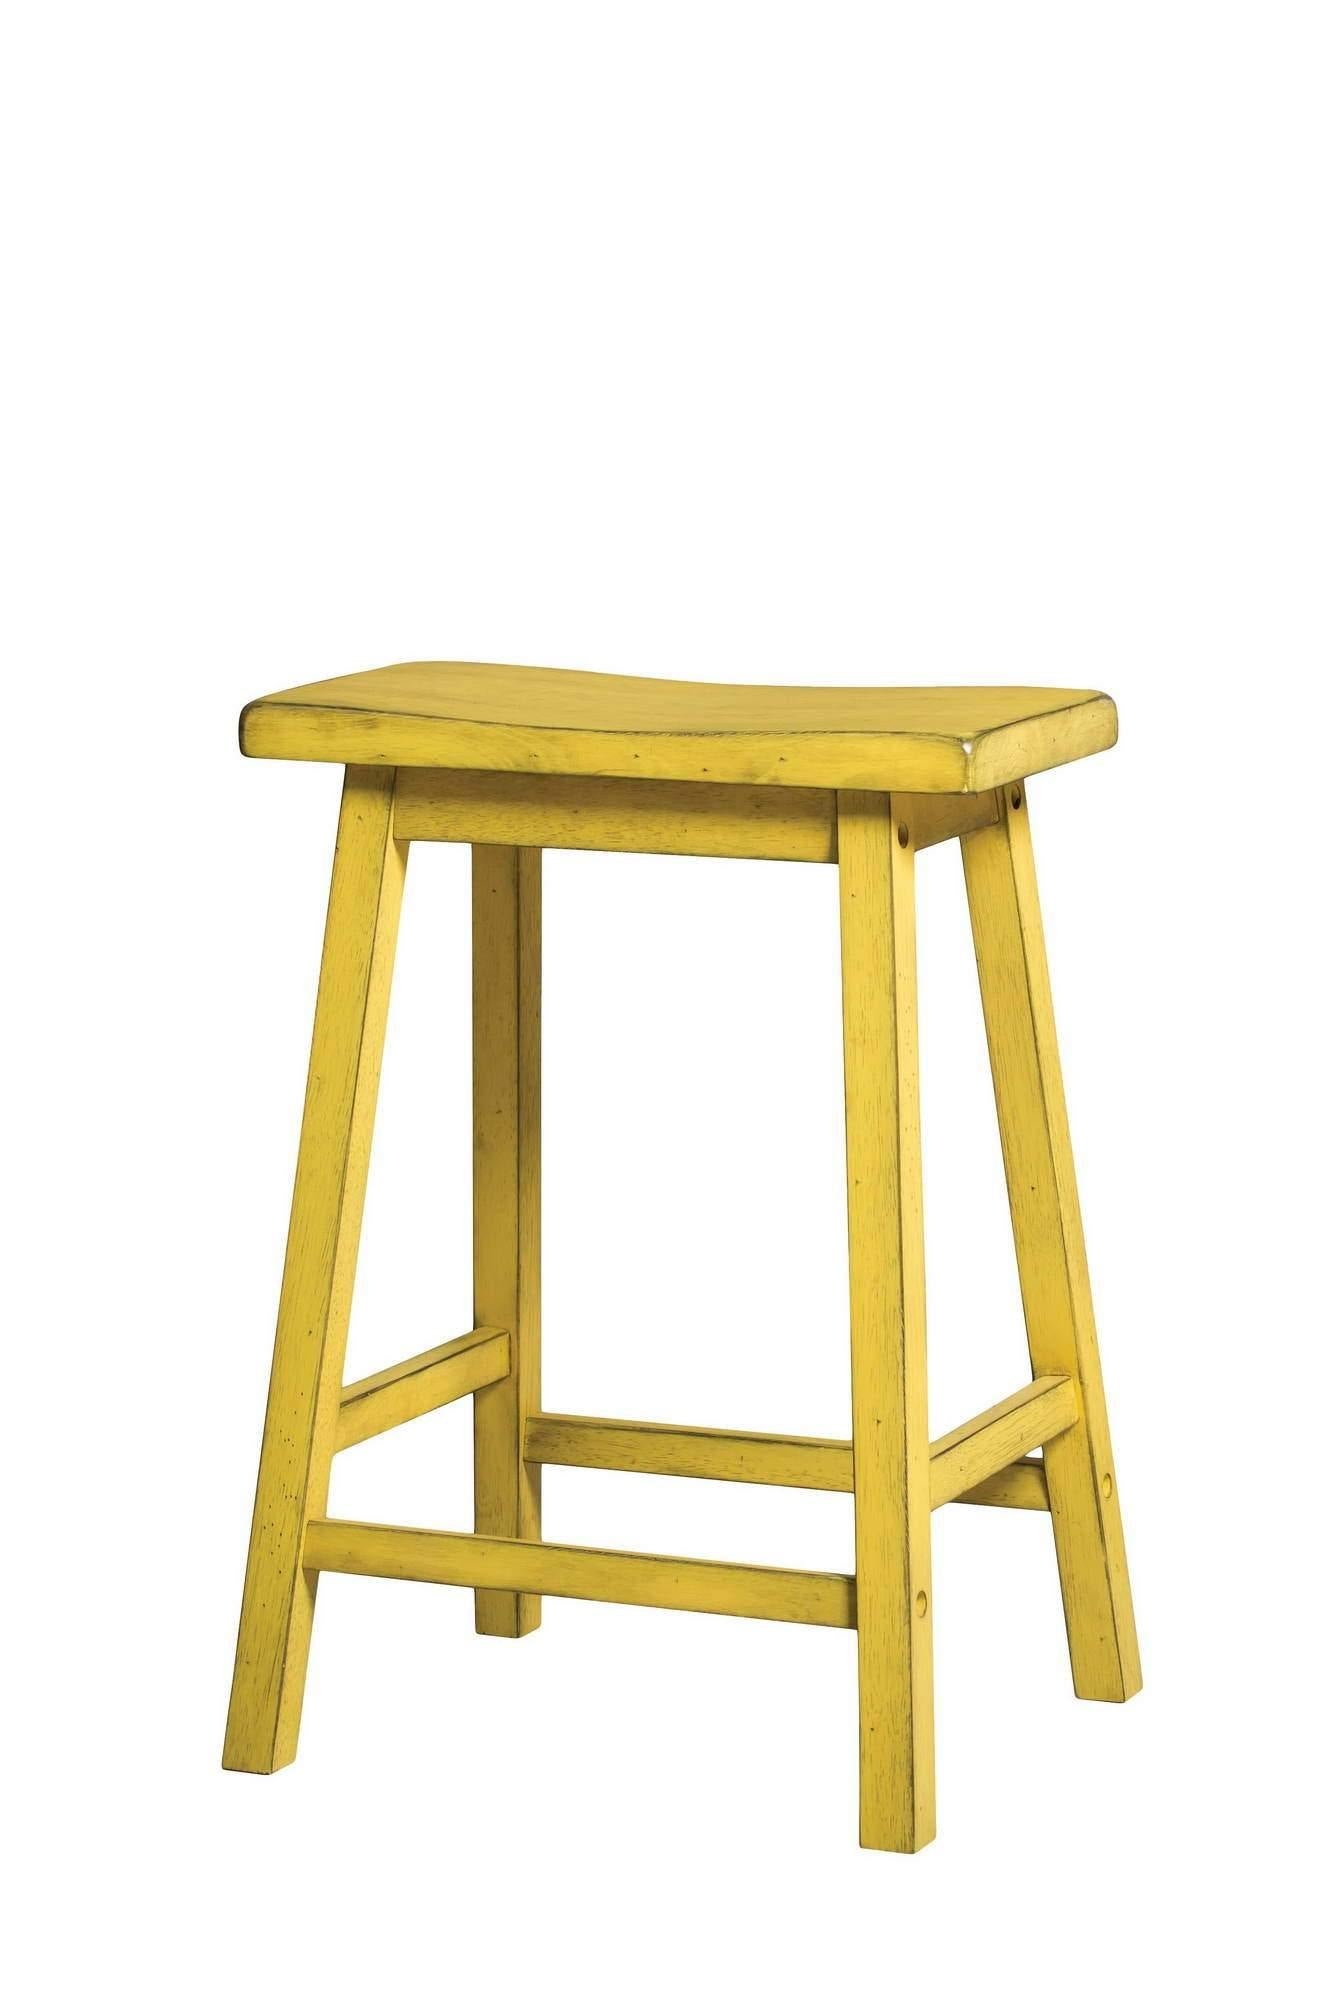 "Counter Saddle Stool, Distressed Yellow, 24"" Tall - My USA Furniture"